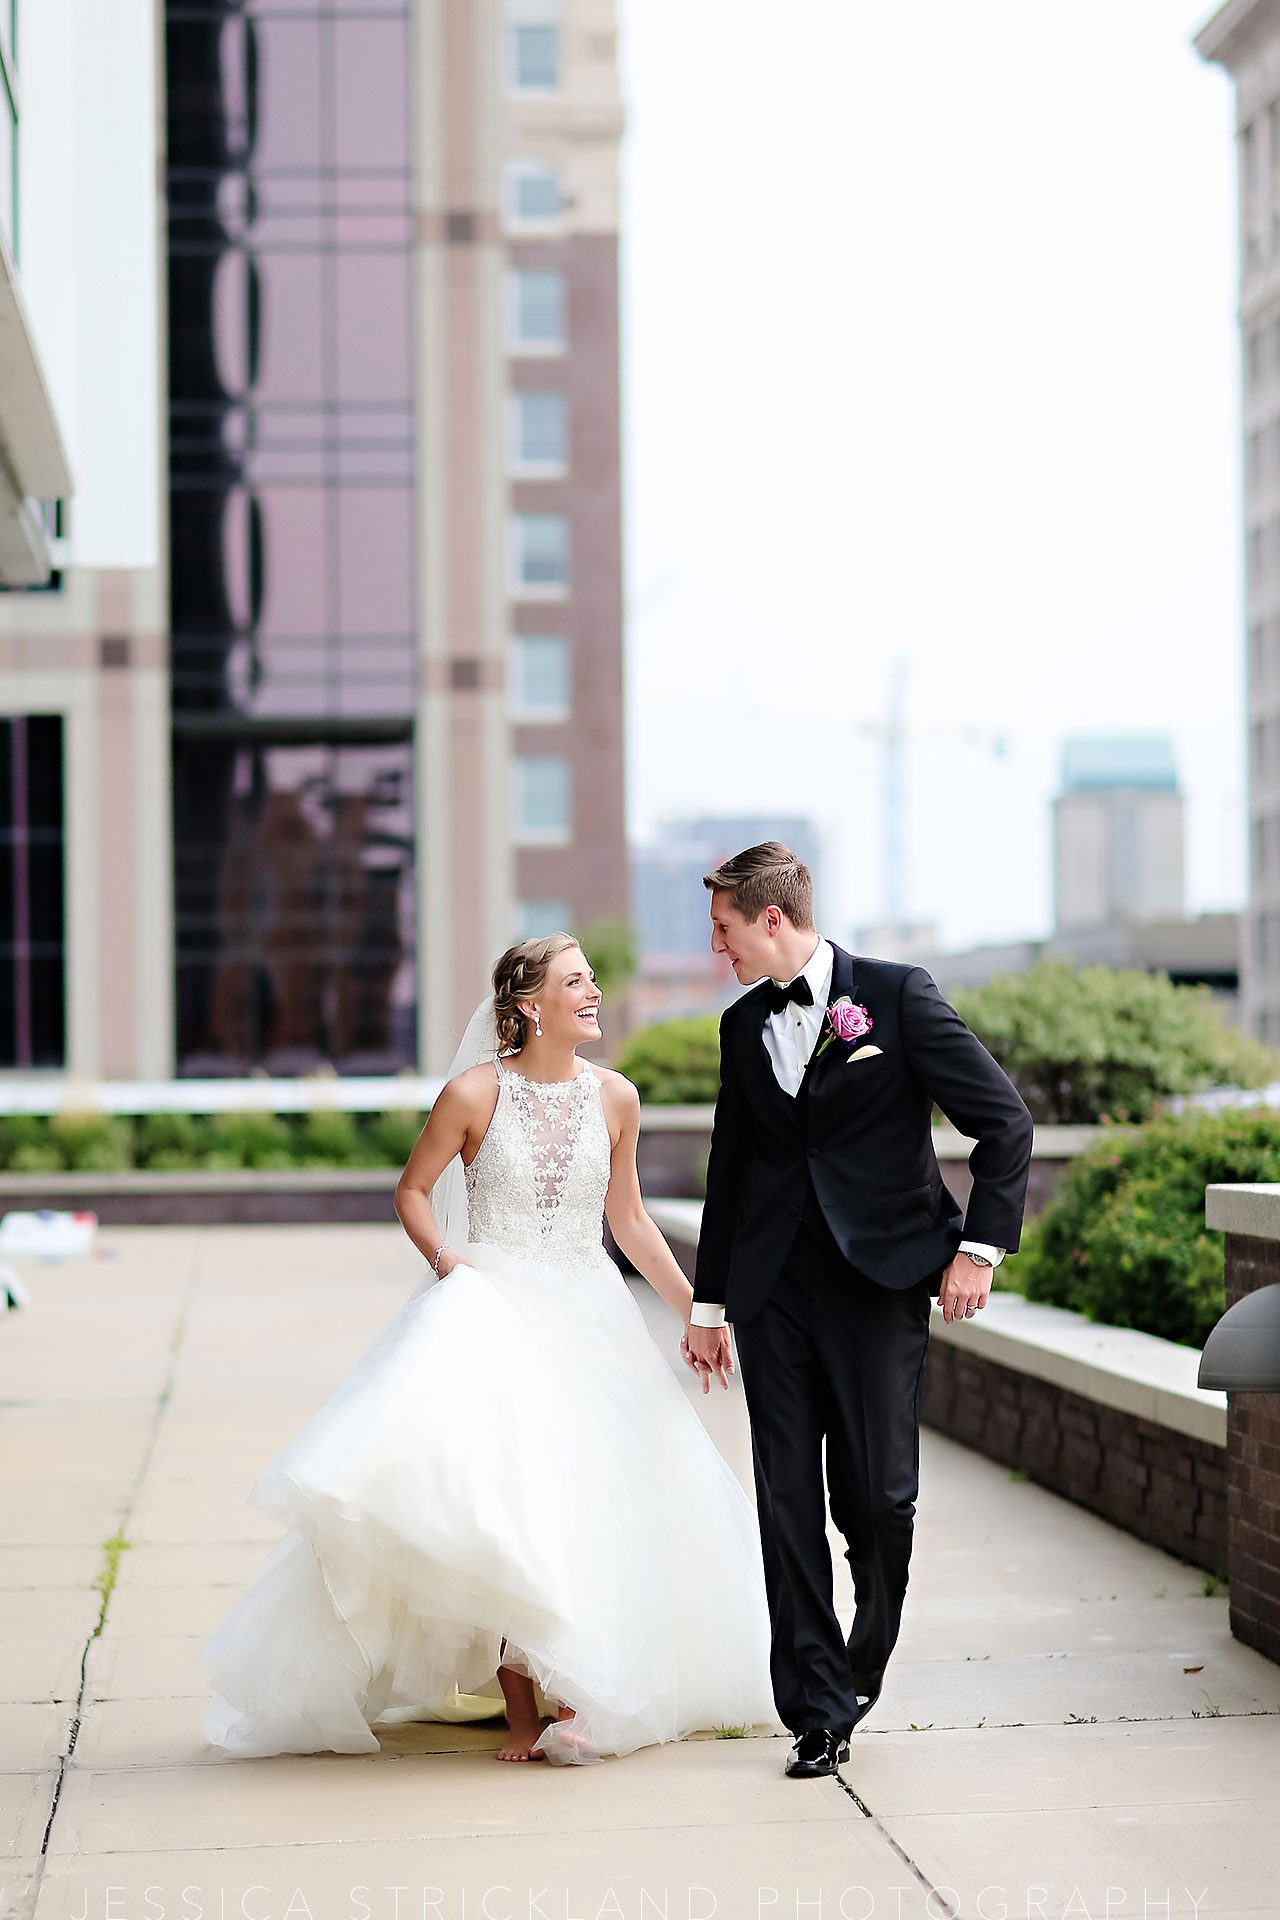 Serra Alex Regions Tower Indianapolis Wedding 234 watermarked